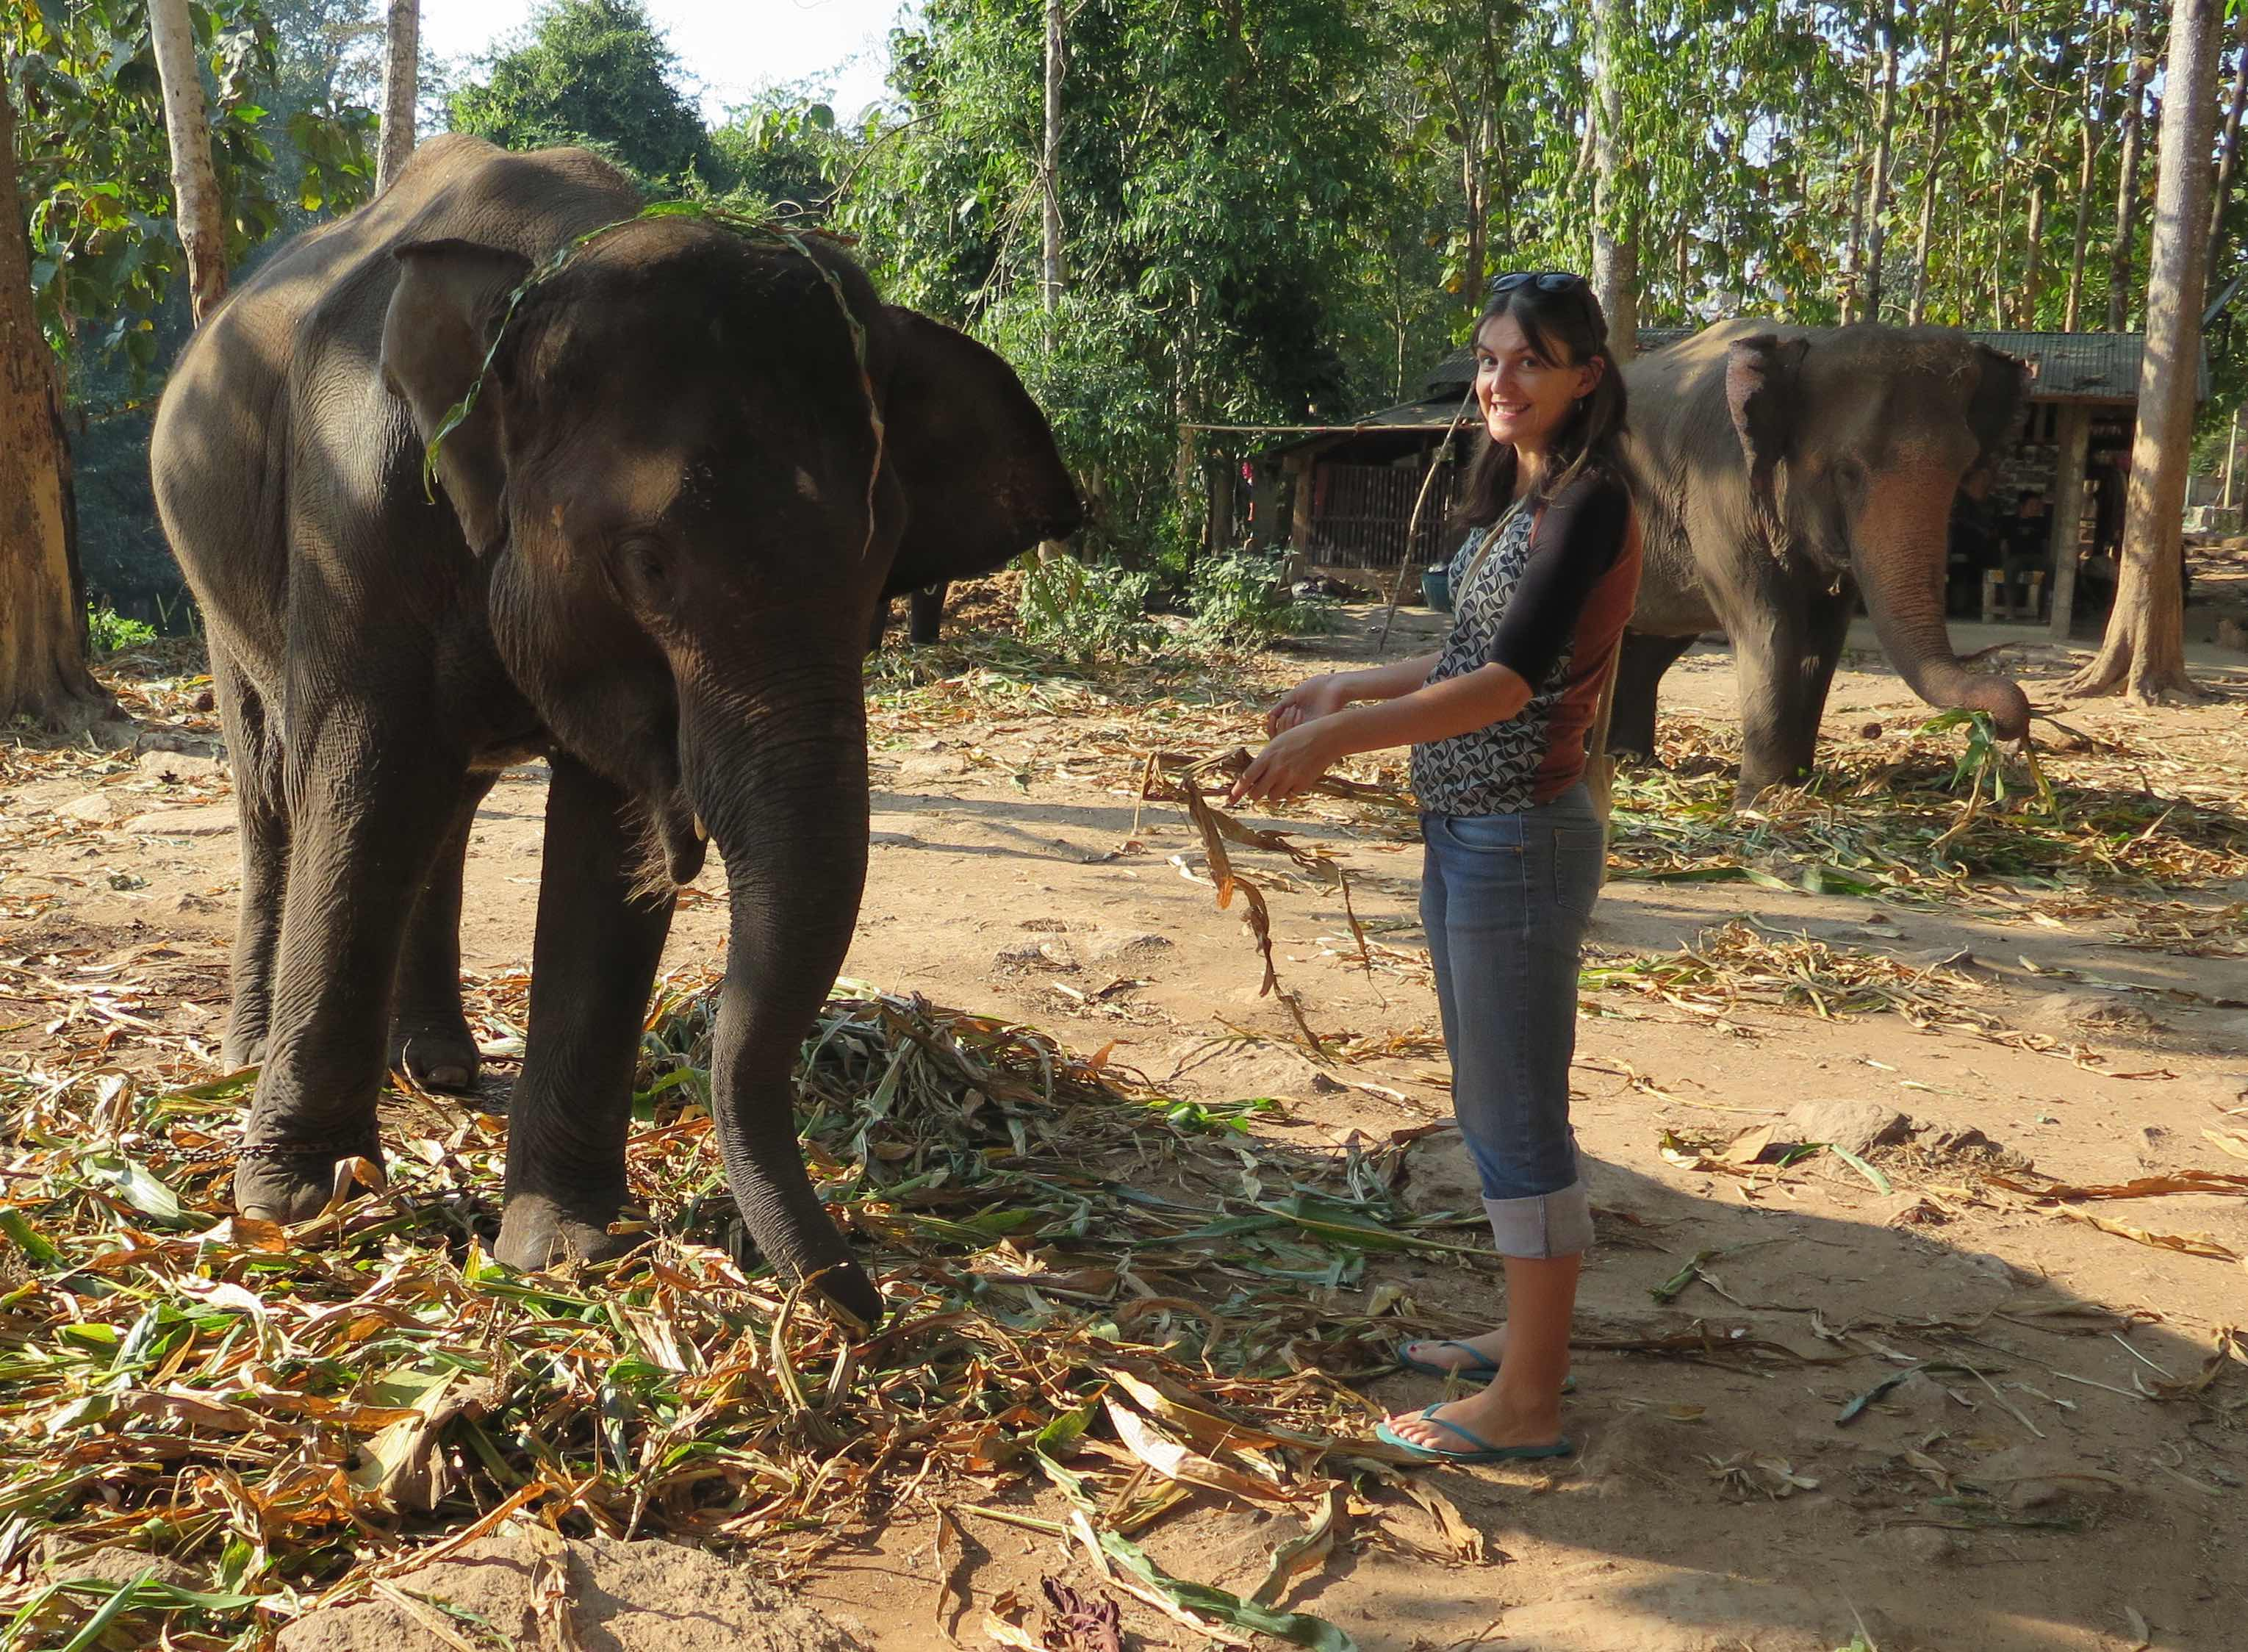 Elephant adventure in Thailand